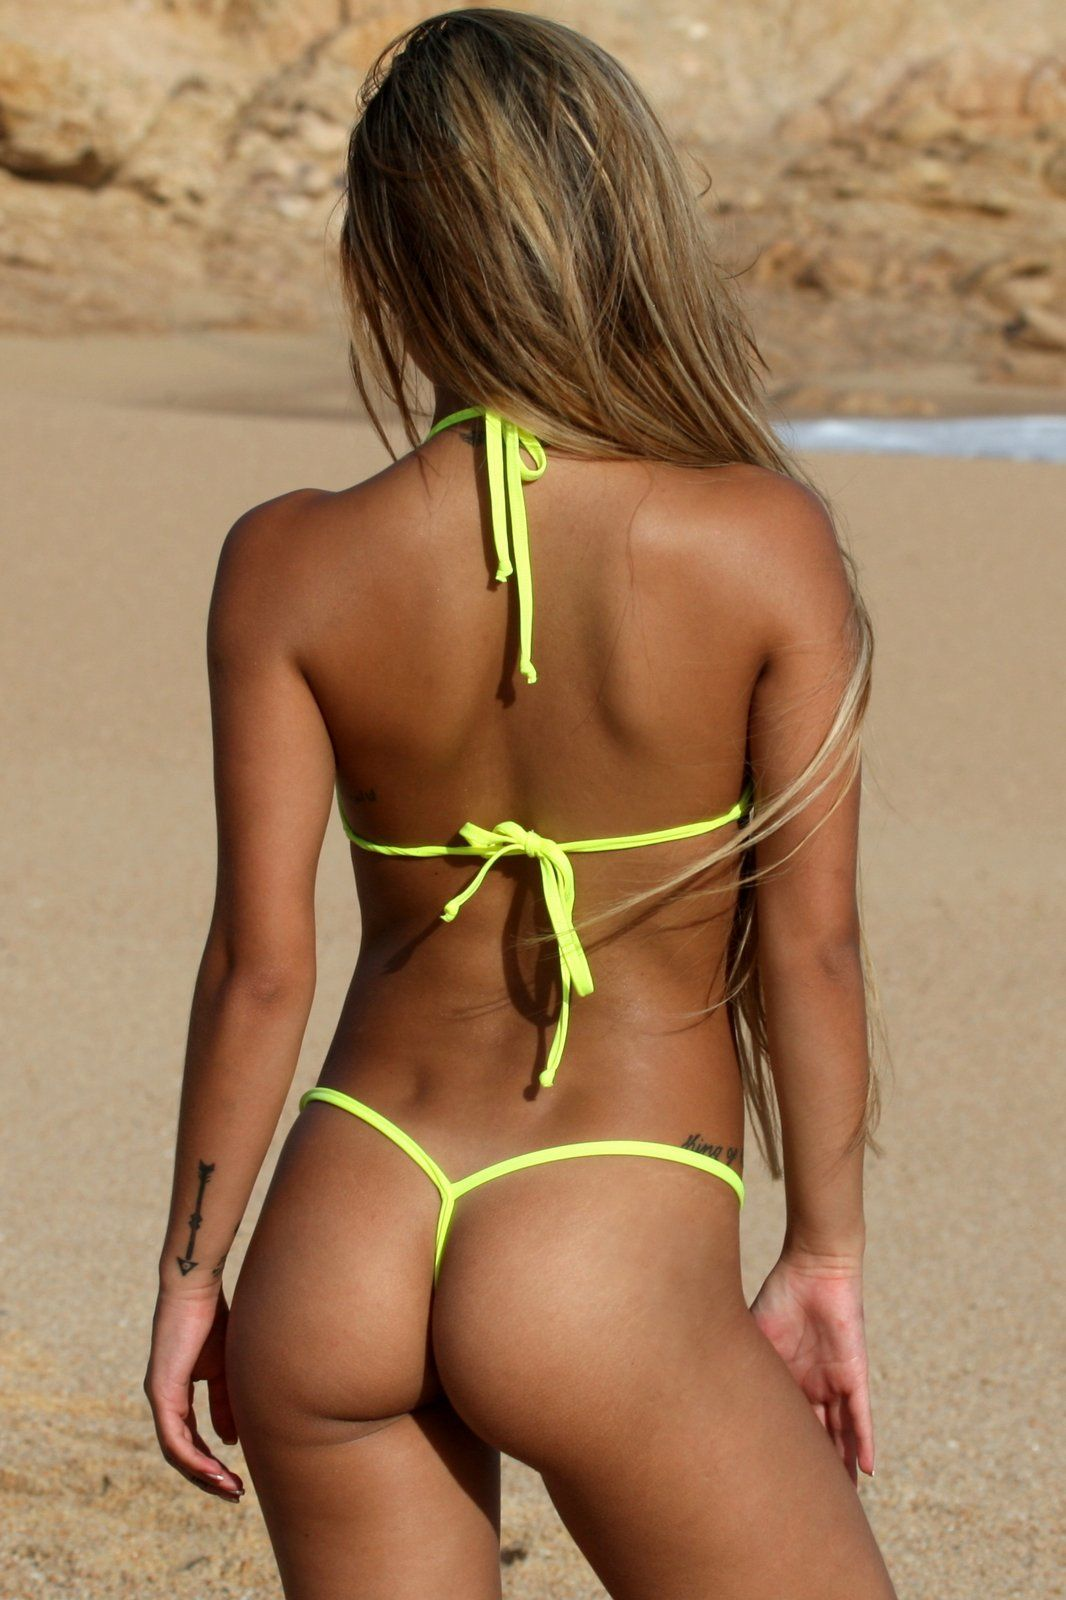 Nudes wearing thongs — 6